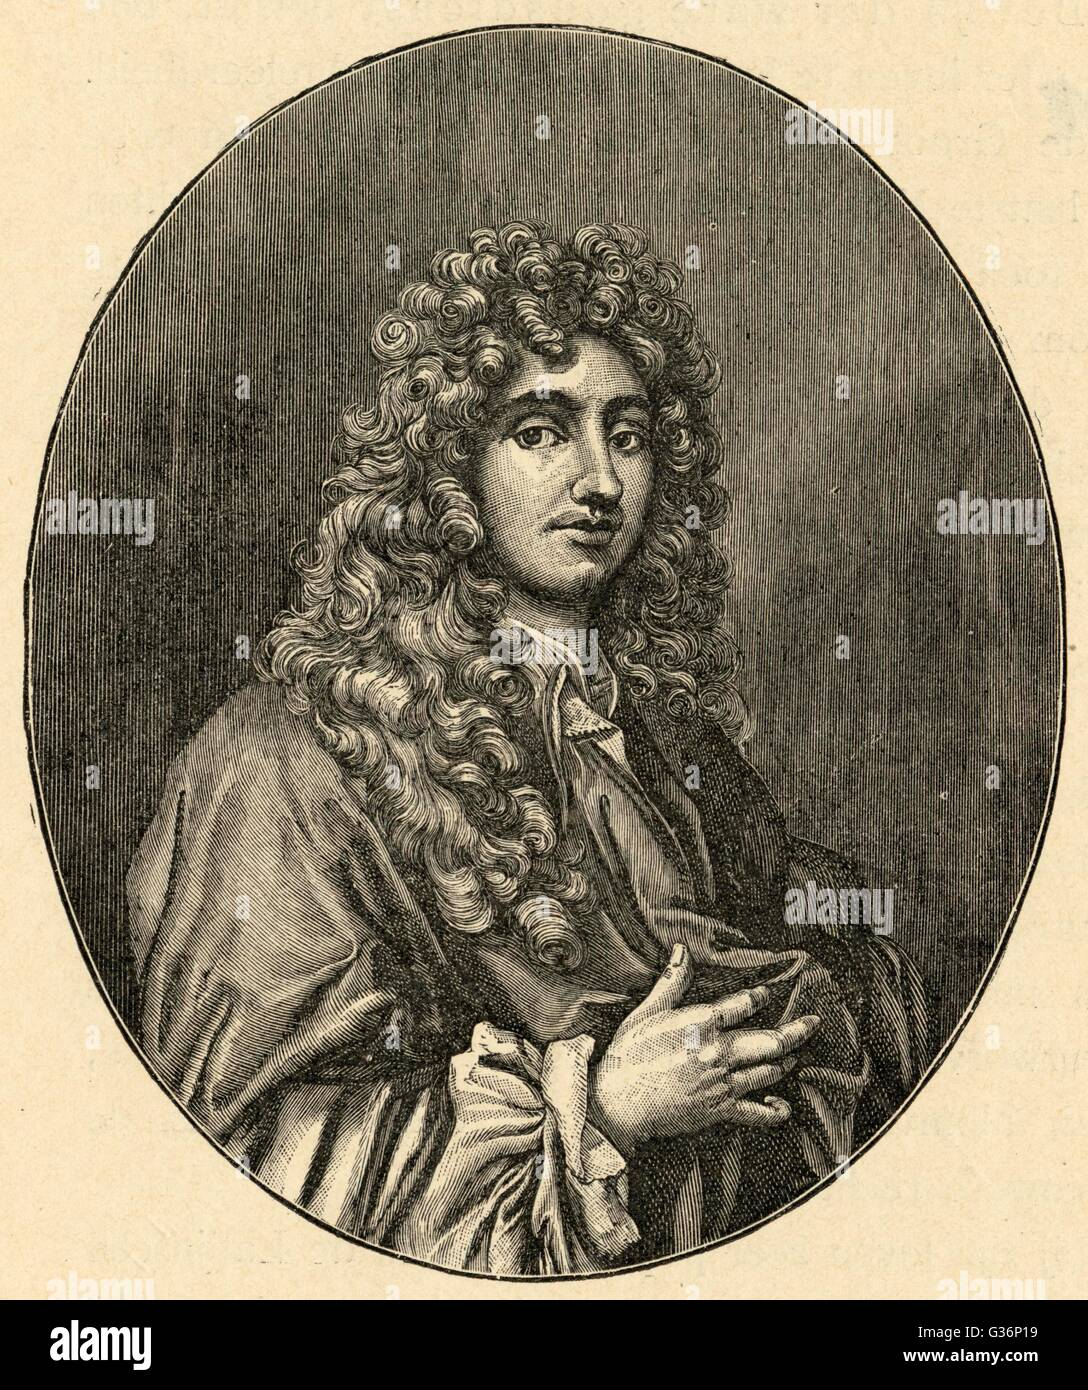 Christian (or Christiaan) Huygens, Dutch mathematician, physicist, horologist and astronomer, notable for his contributions - Stock Image